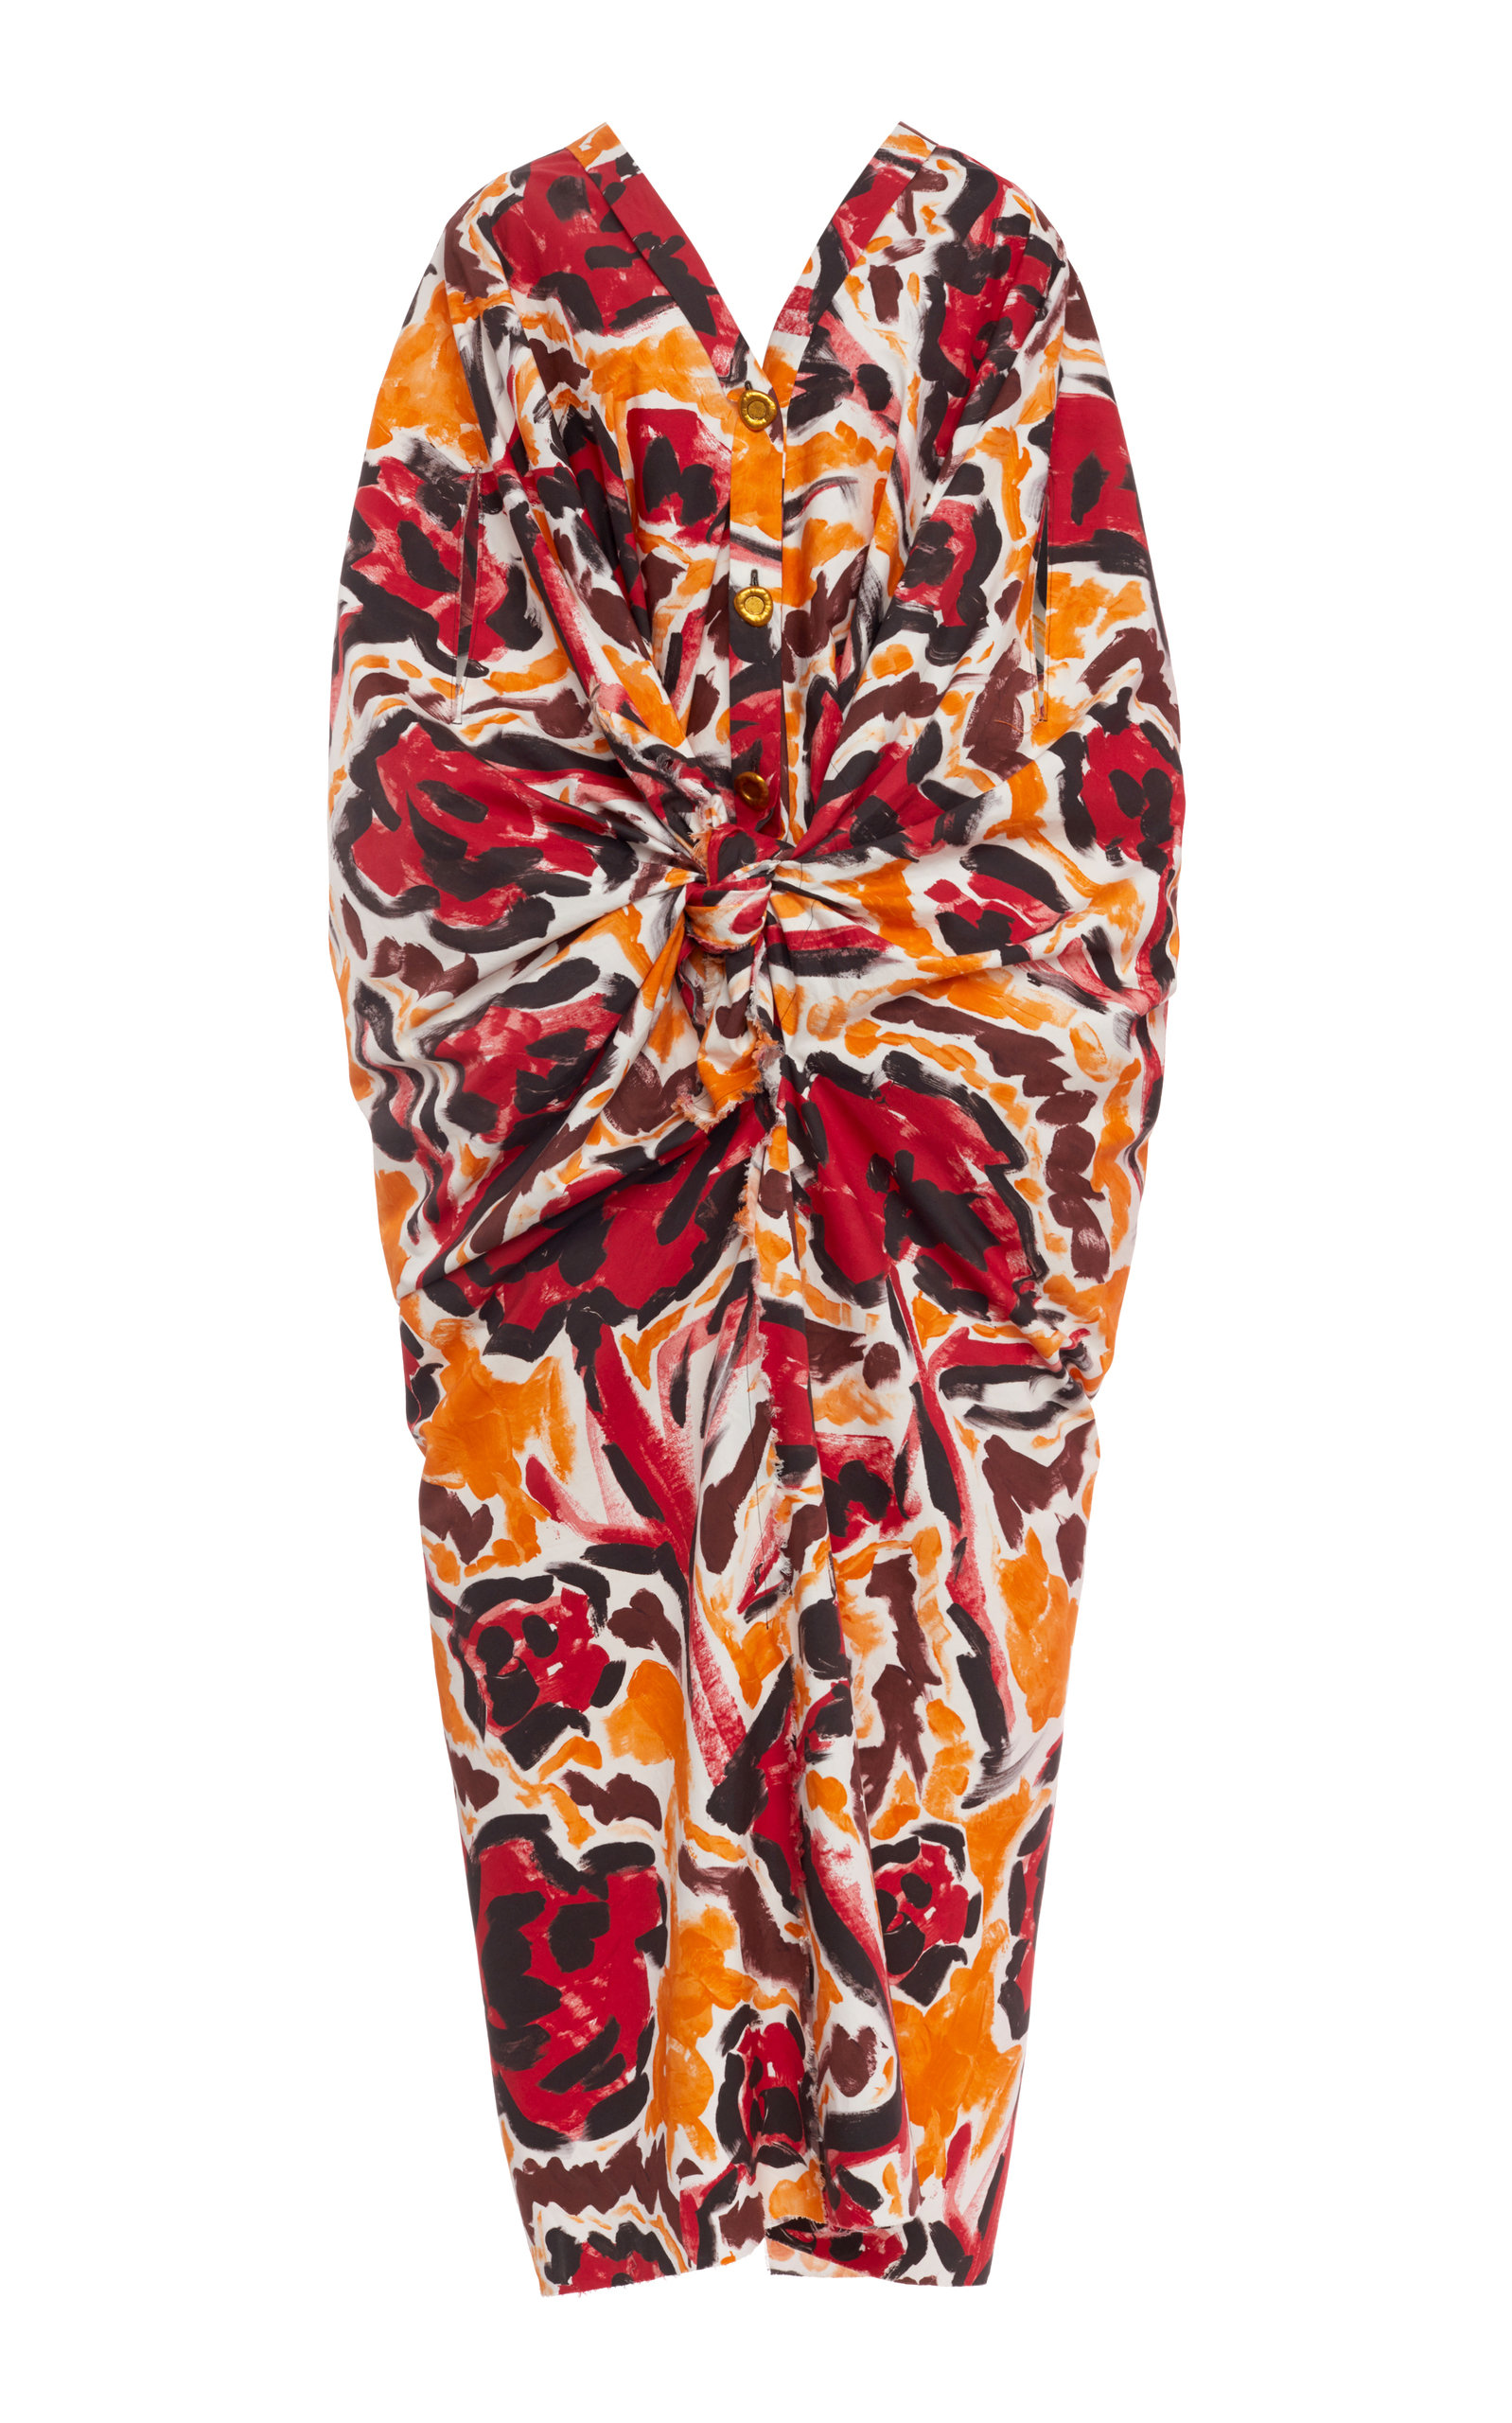 Buy Marni Printed Gathered Cotton Midi Dress online, shop Marni at the best price